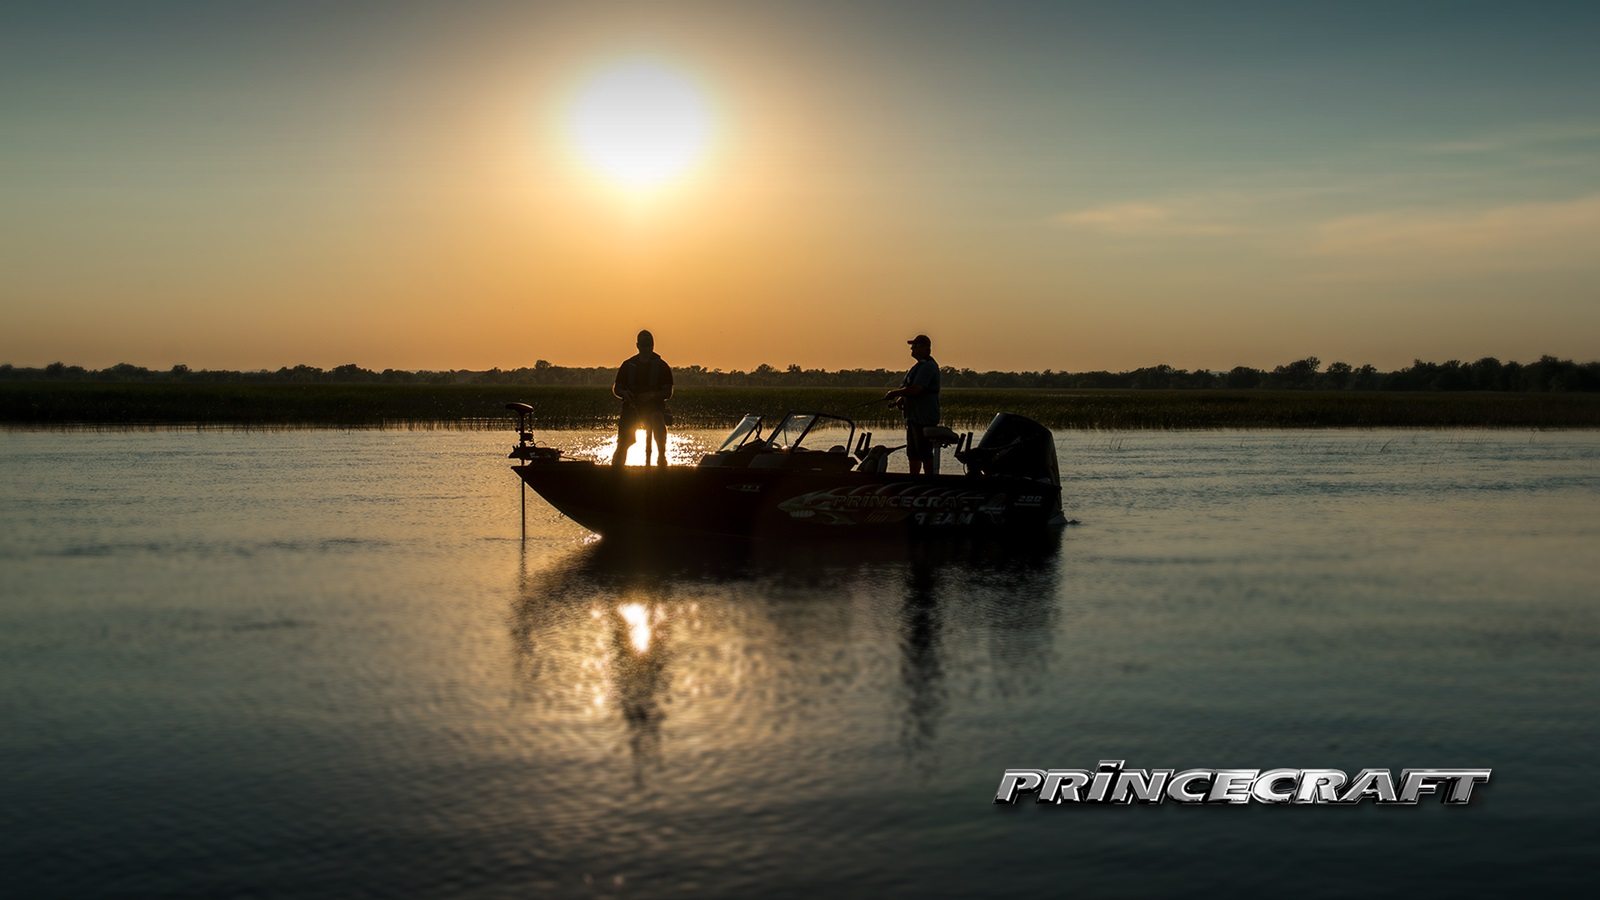 Wallpapers and Photos of Princecraft Pontoon and Fishing Boats